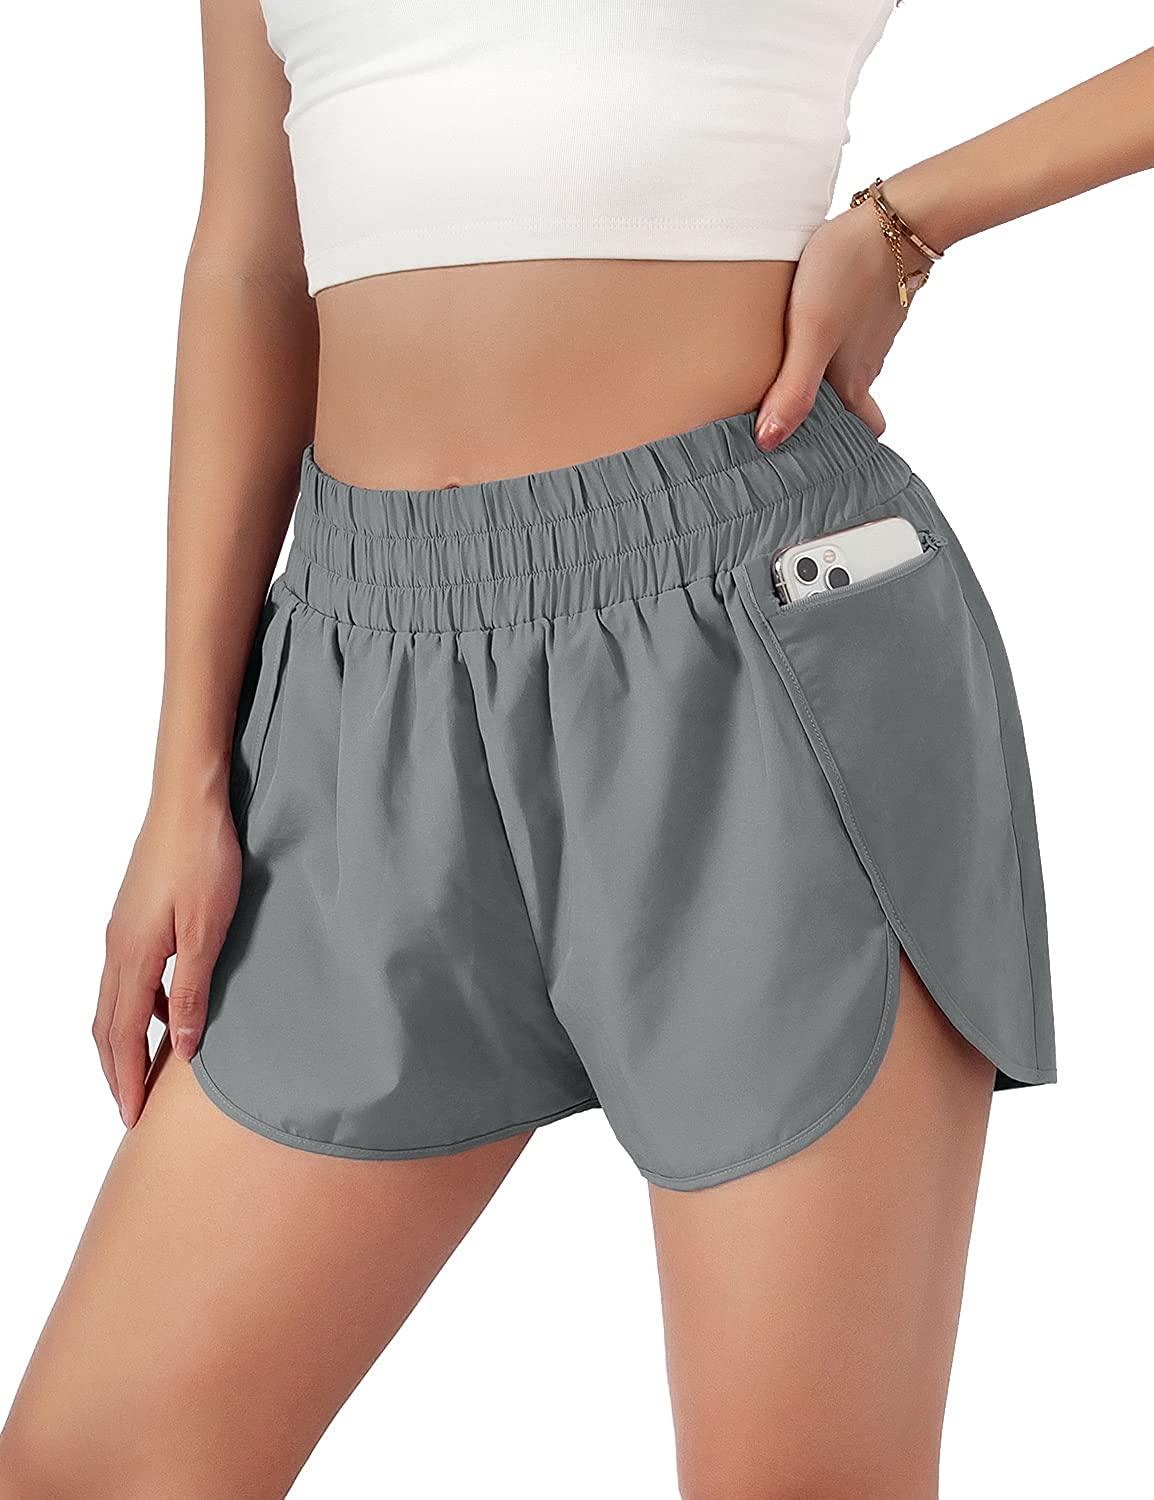 Blooming Jelly Womens Quick-Dry Running Shorts Layer Elast Sport 70% OFF Oakland Mall Outlet